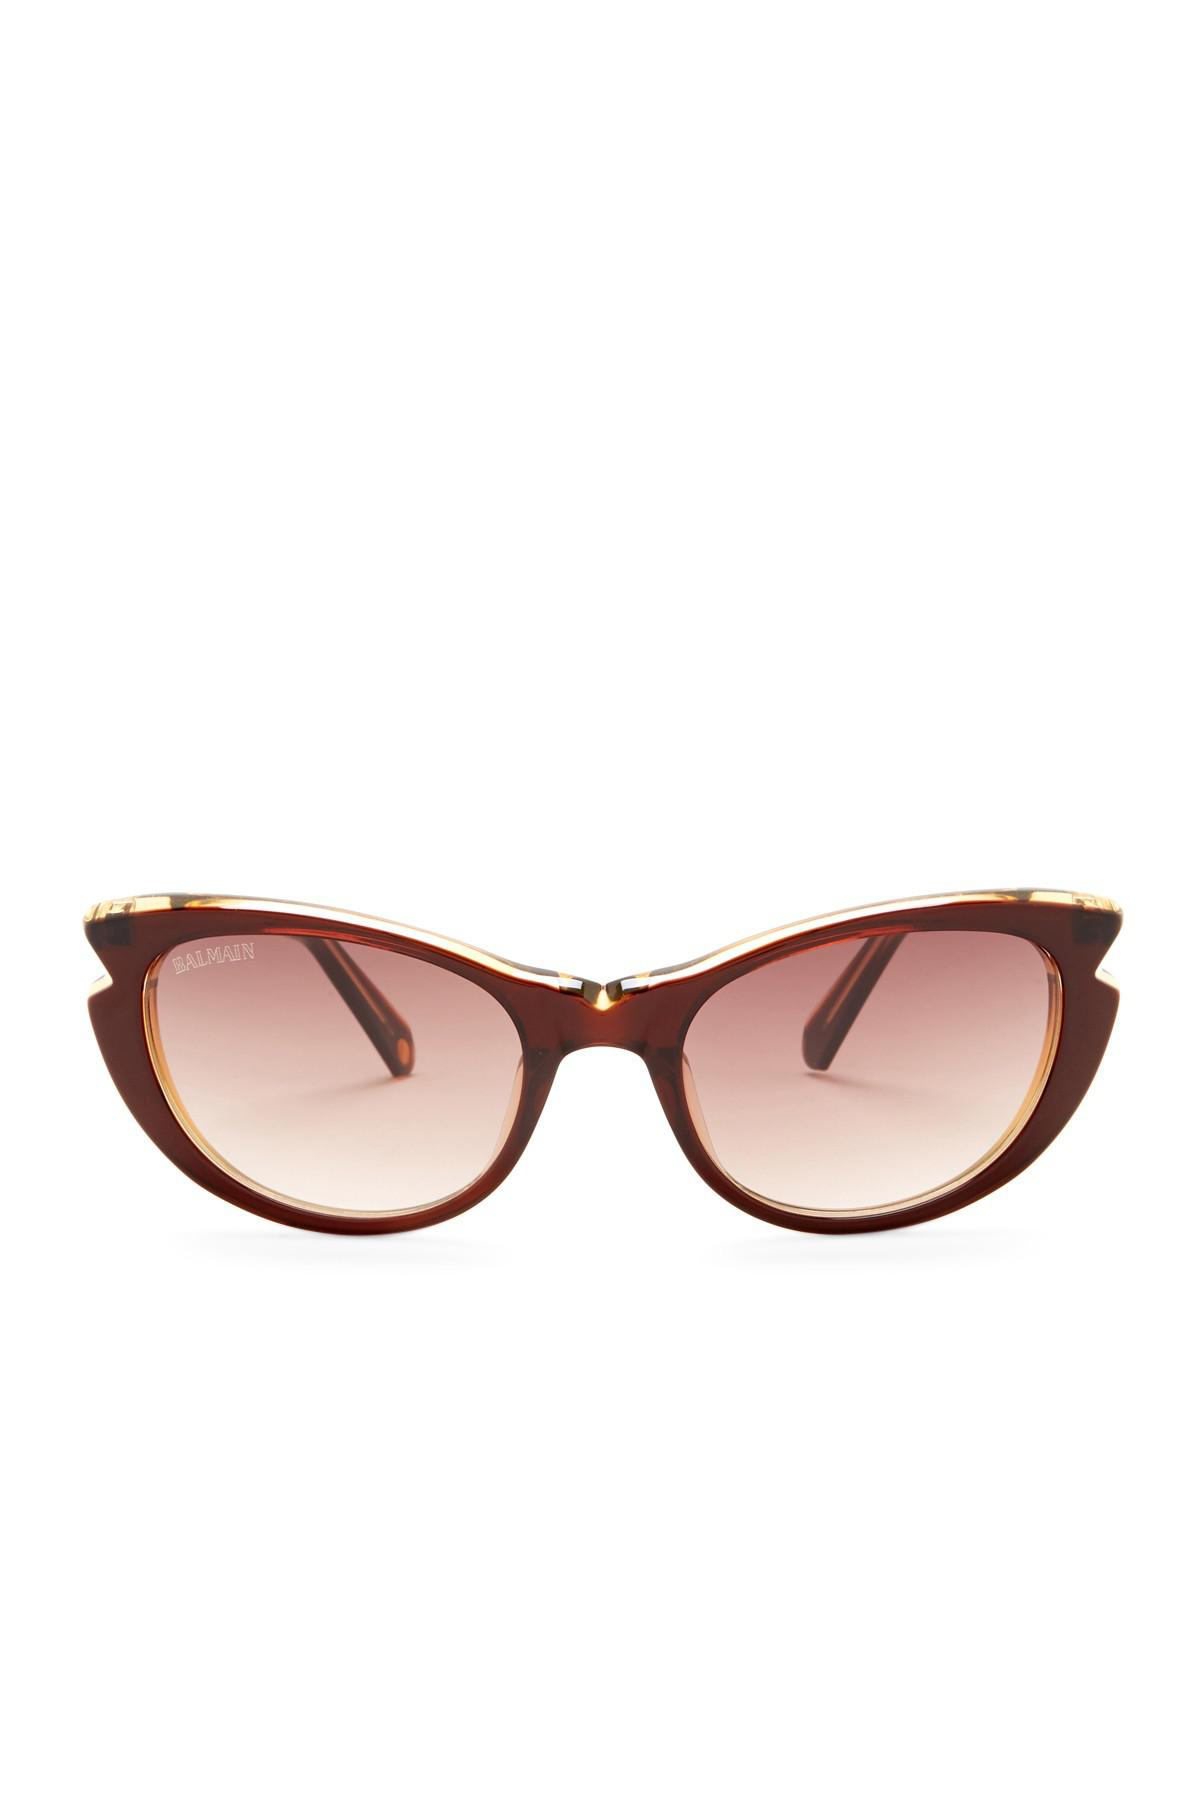 2988e4fba1 Balmain - Brown 53mm Cat Eye Sunglasses - Lyst. View fullscreen